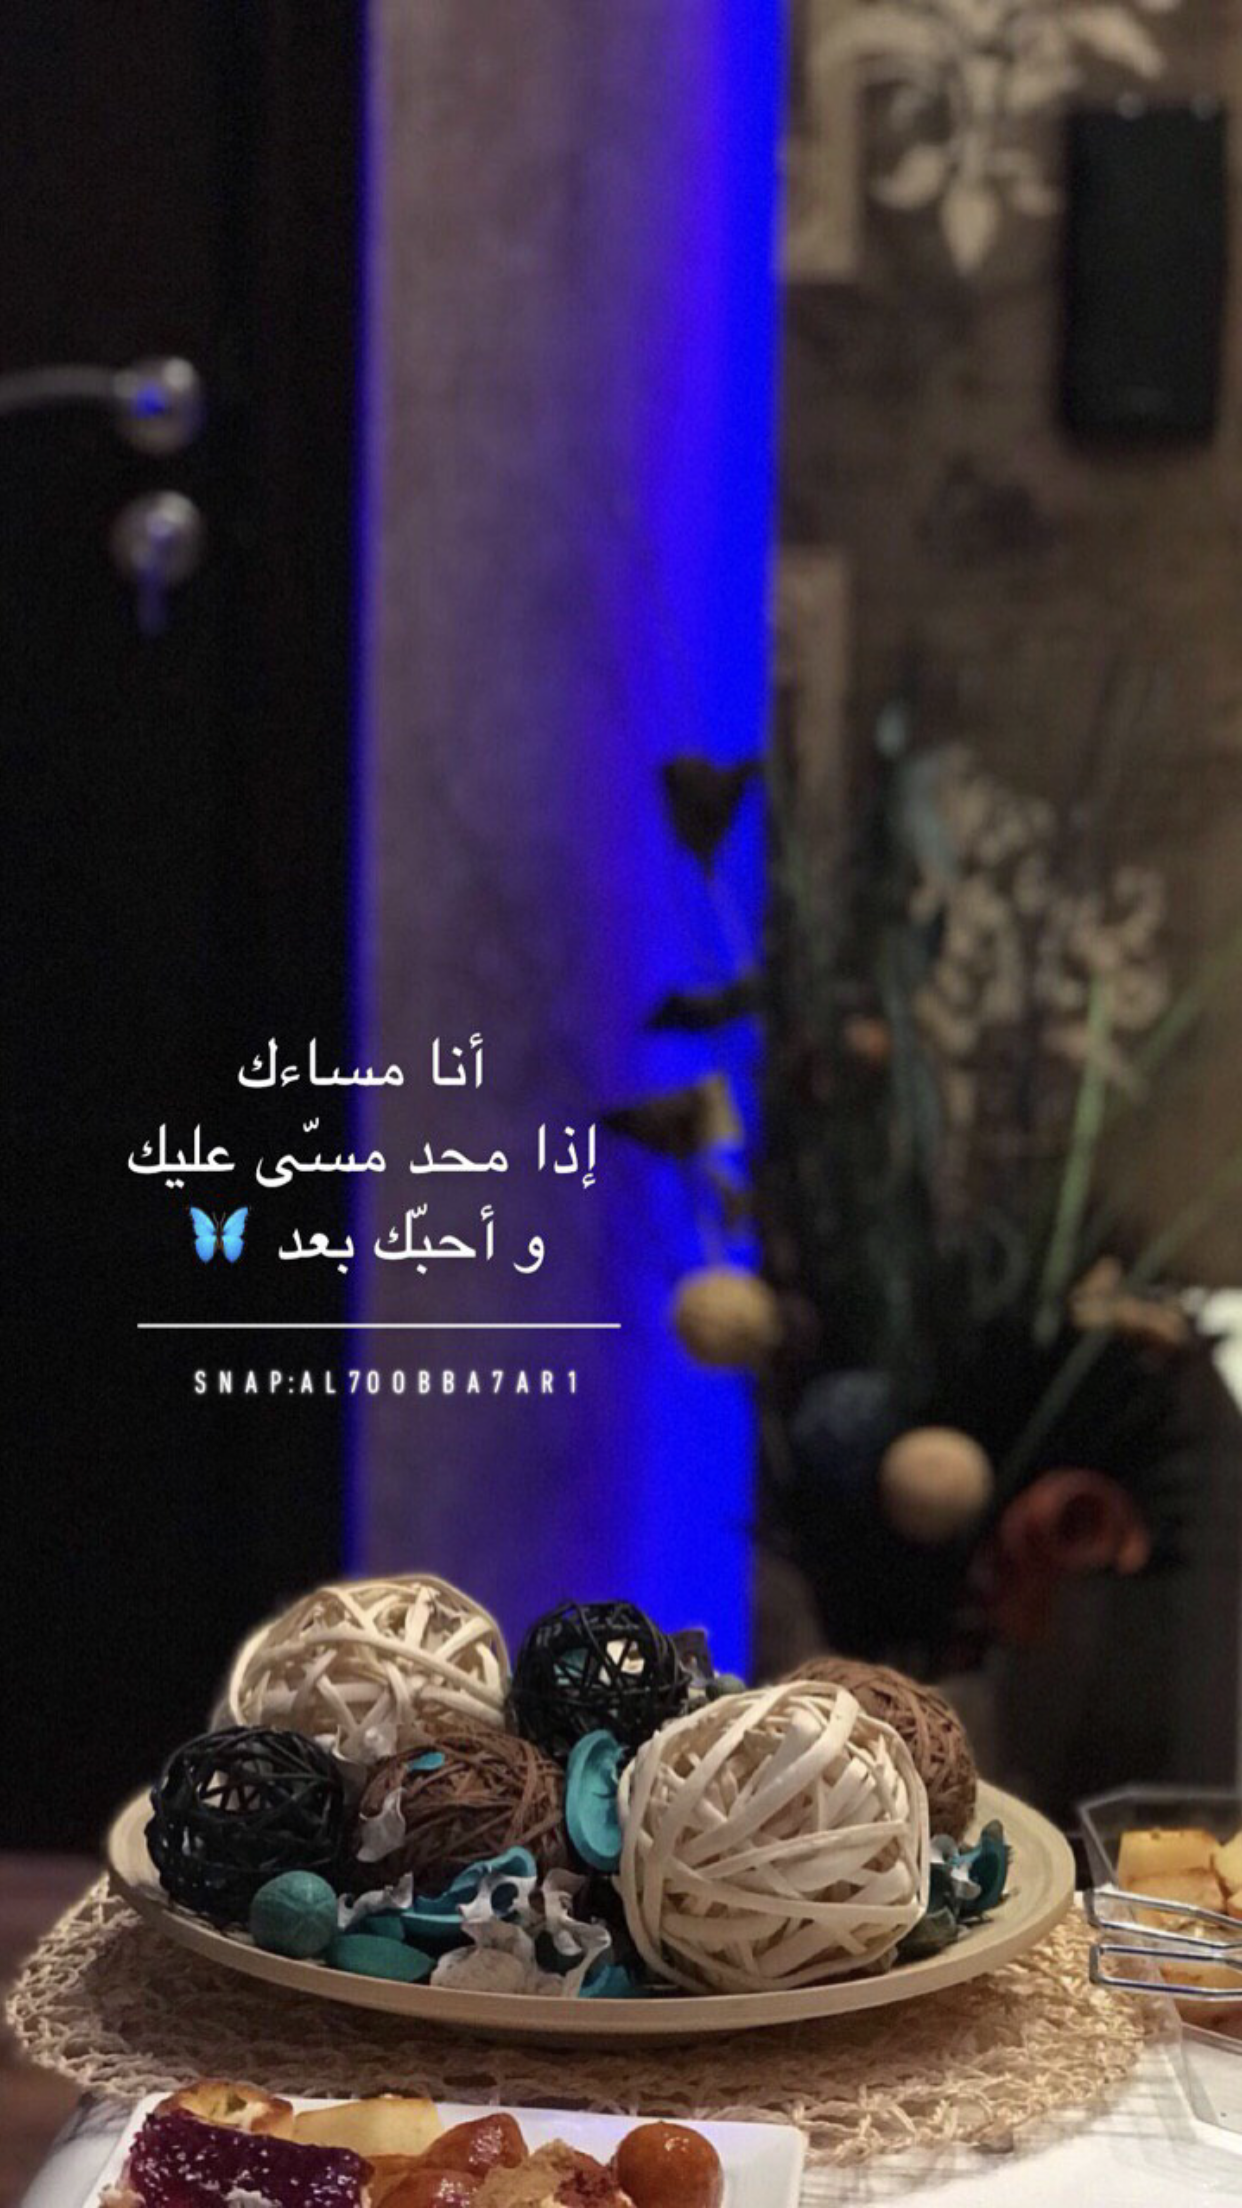 Snap Al7oobba7ar1 Funny Arabic Quotes Beauty Iphone Wallpaper Coffee Quotes